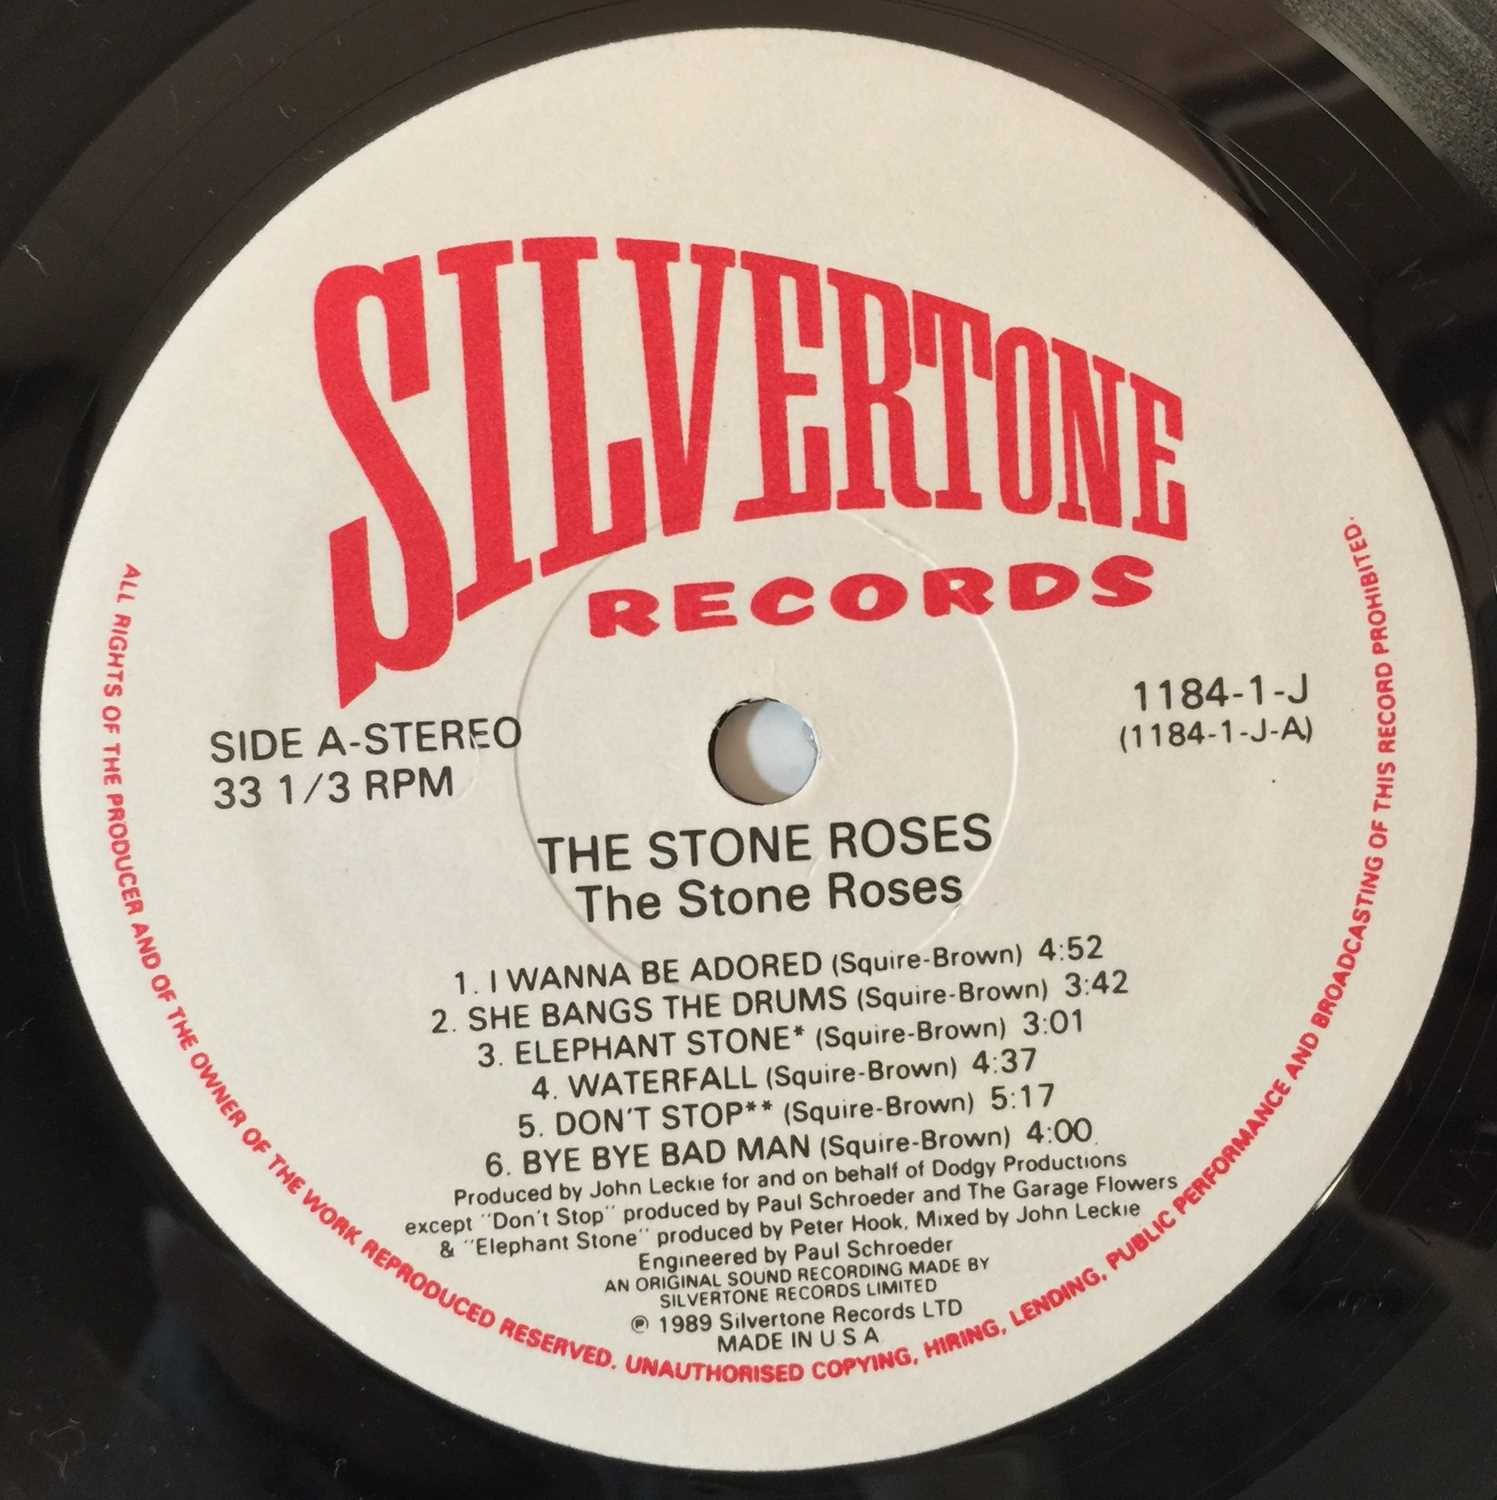 THE STONE ROSES - THE STONE ROSES LP (COMPLETE OG US COPY WITH PRESS RELEASE - SILVERTONE 1184-1-J) - Image 4 of 6